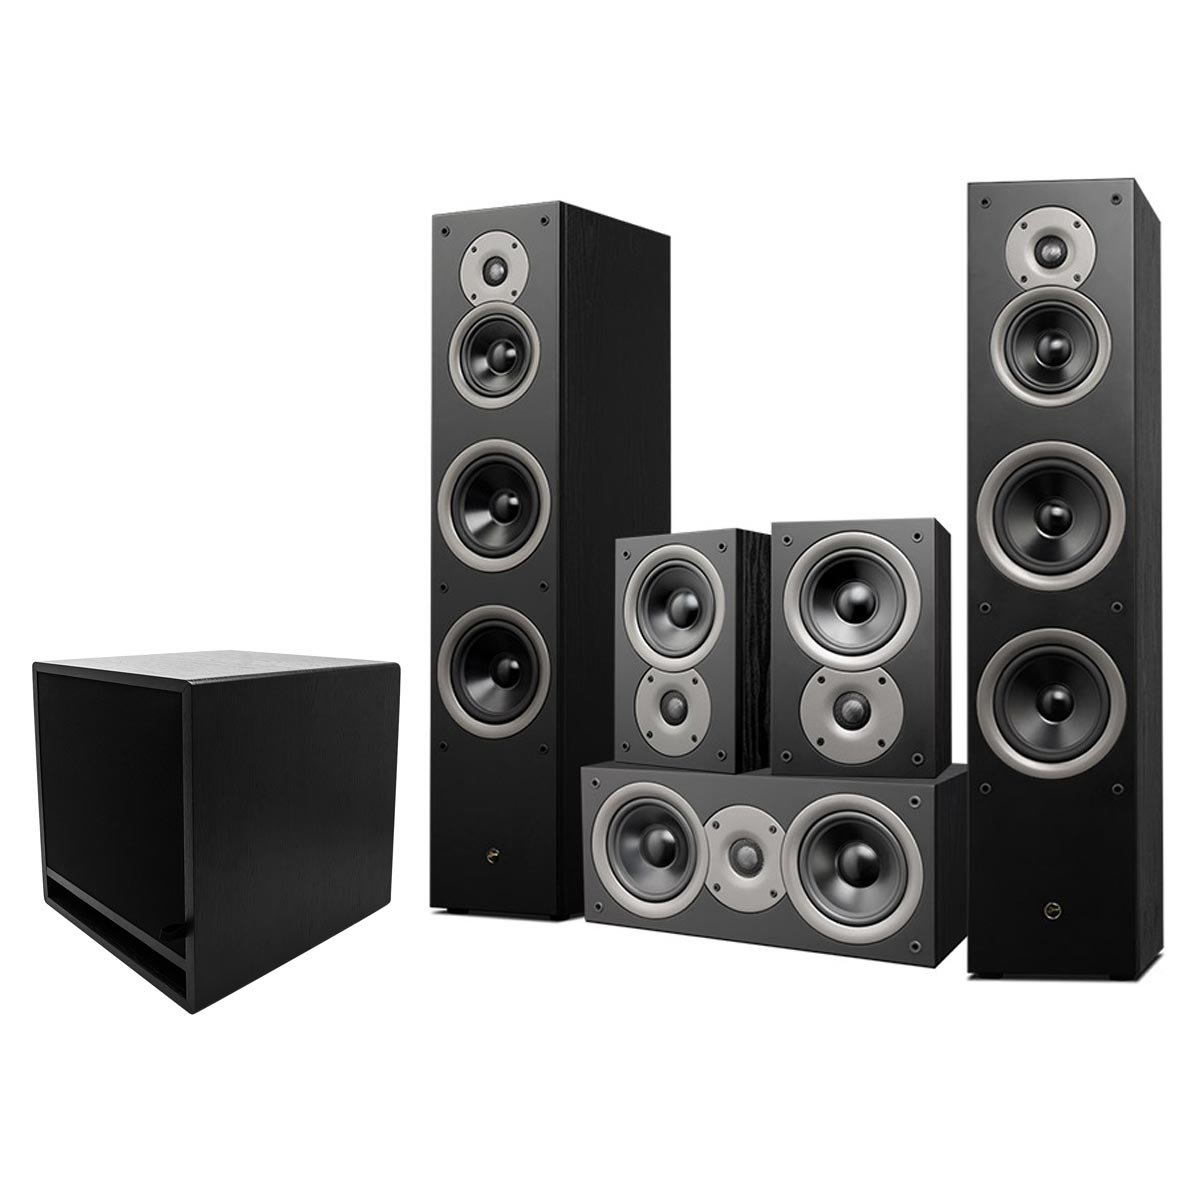 swans-jam-and-lab-6-5.1-channel-home-theatre-system-1200x1200.jpg